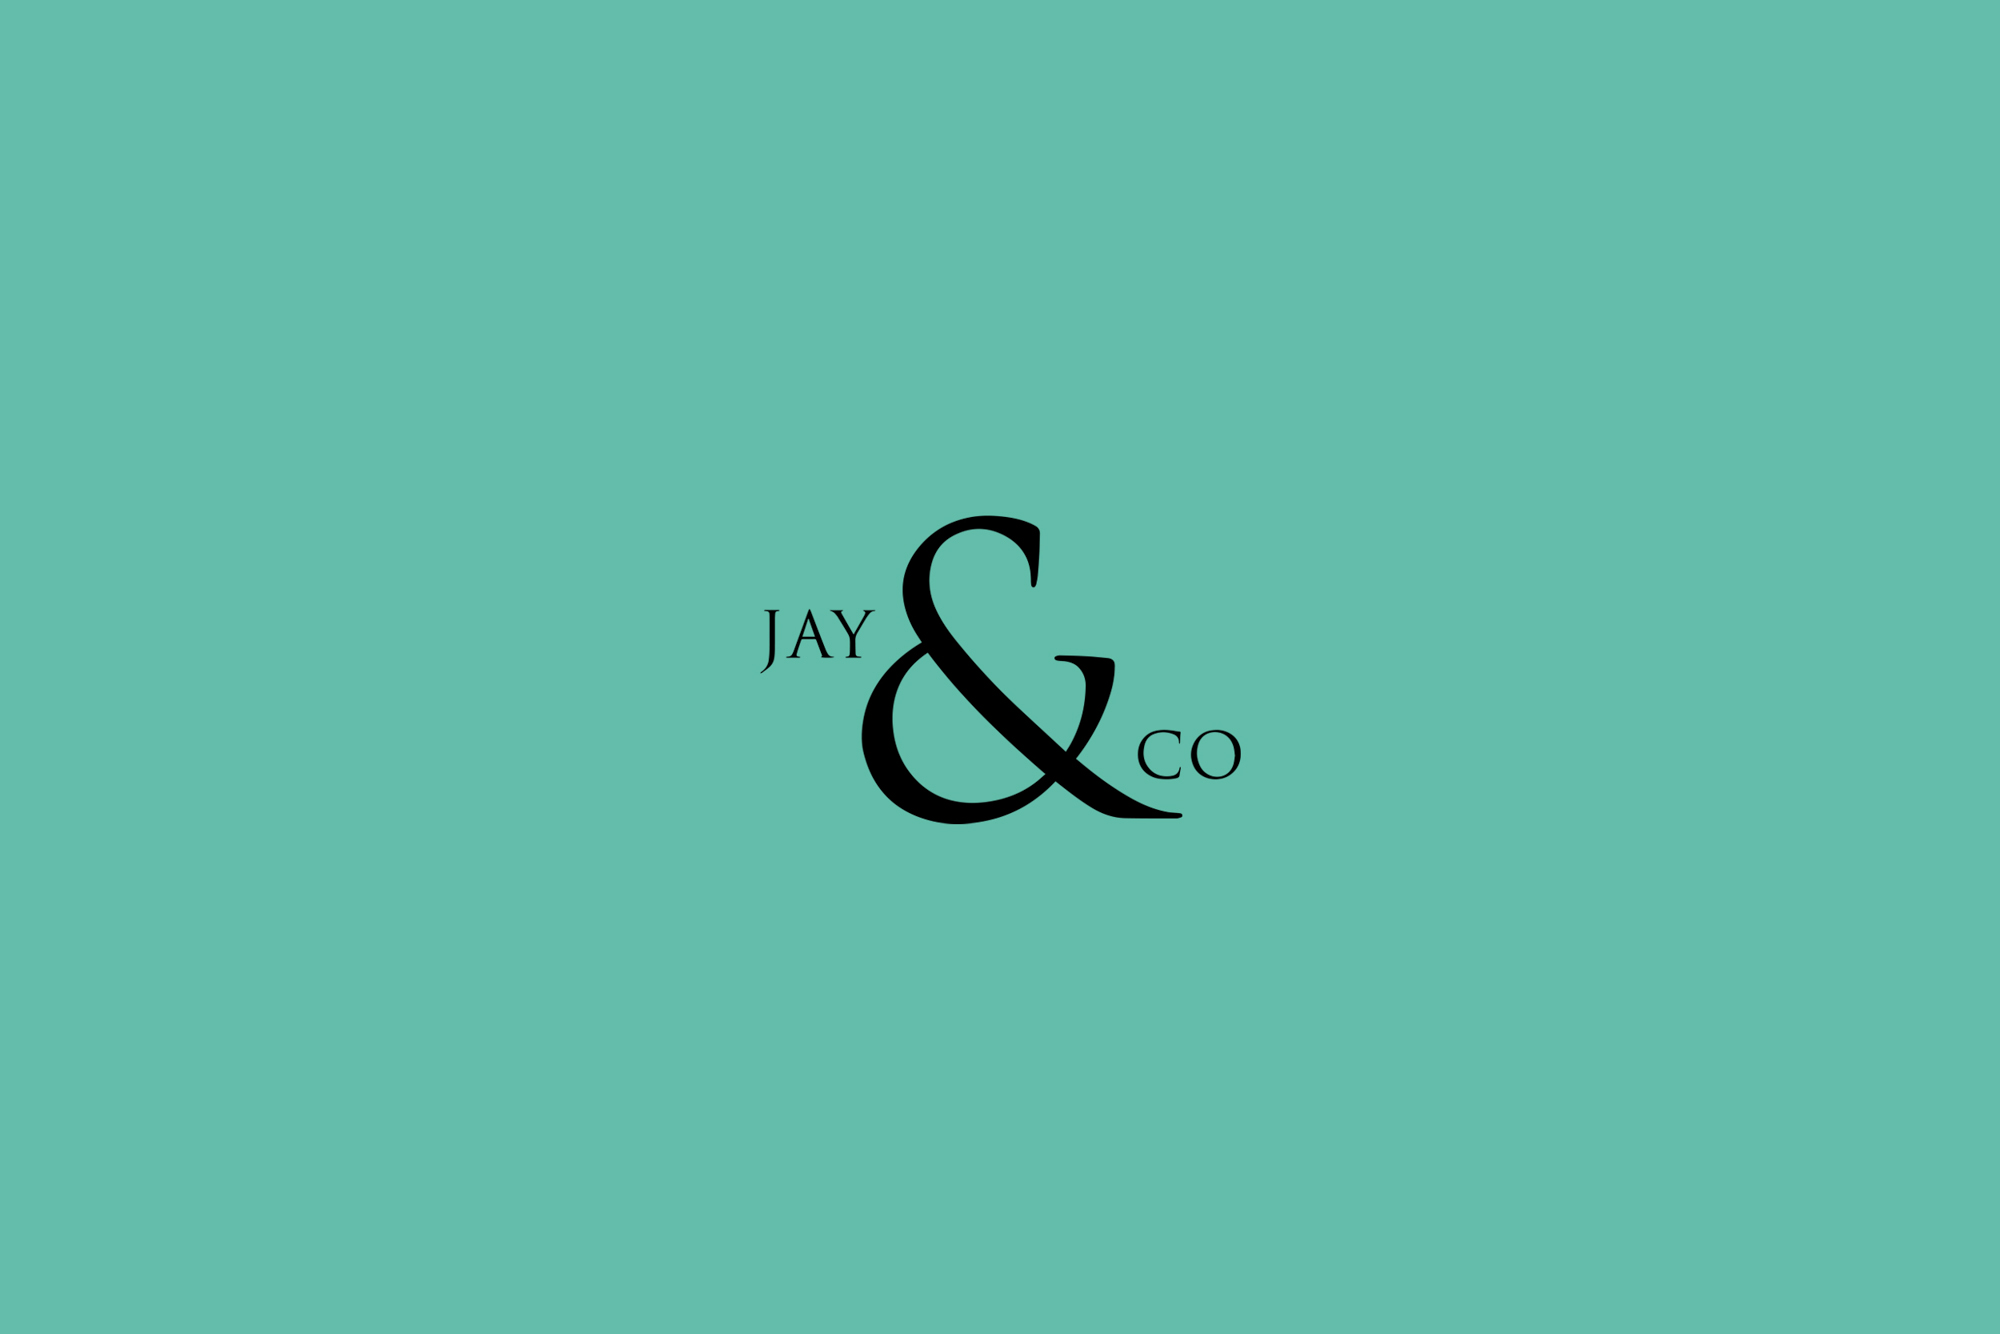 Jay & Co by Wah Wah Lab - Logo Design.jpg